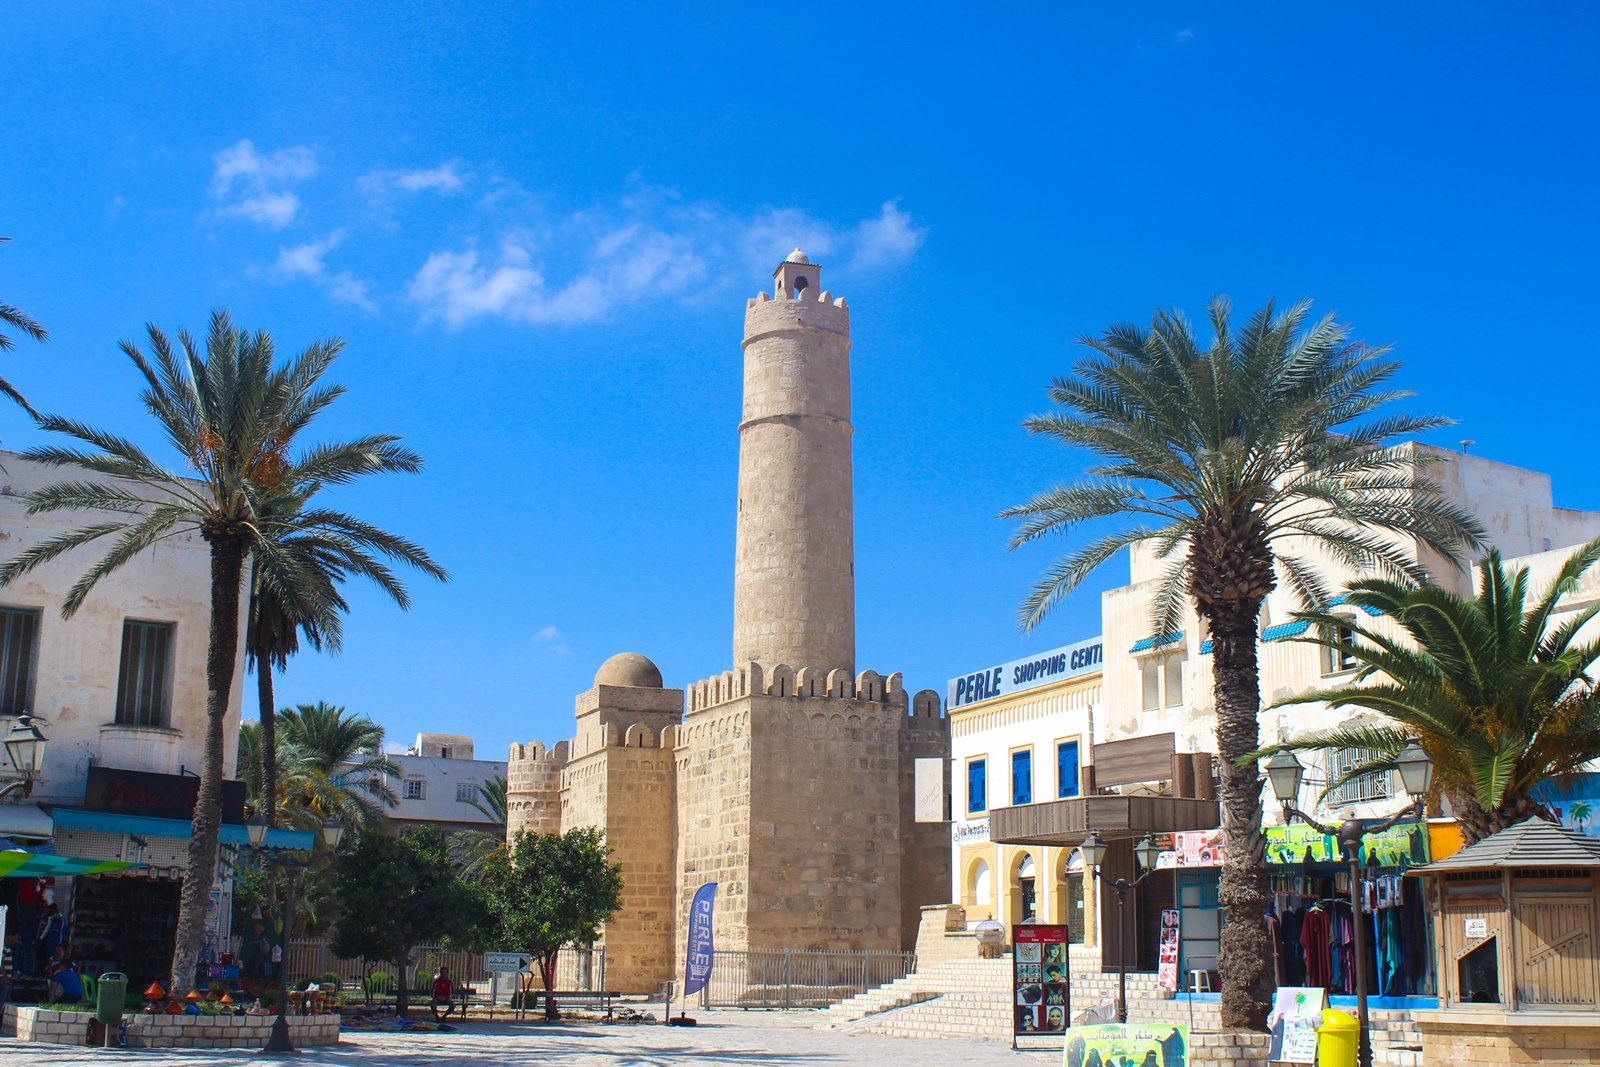 Orientalisches Flair in Sousse